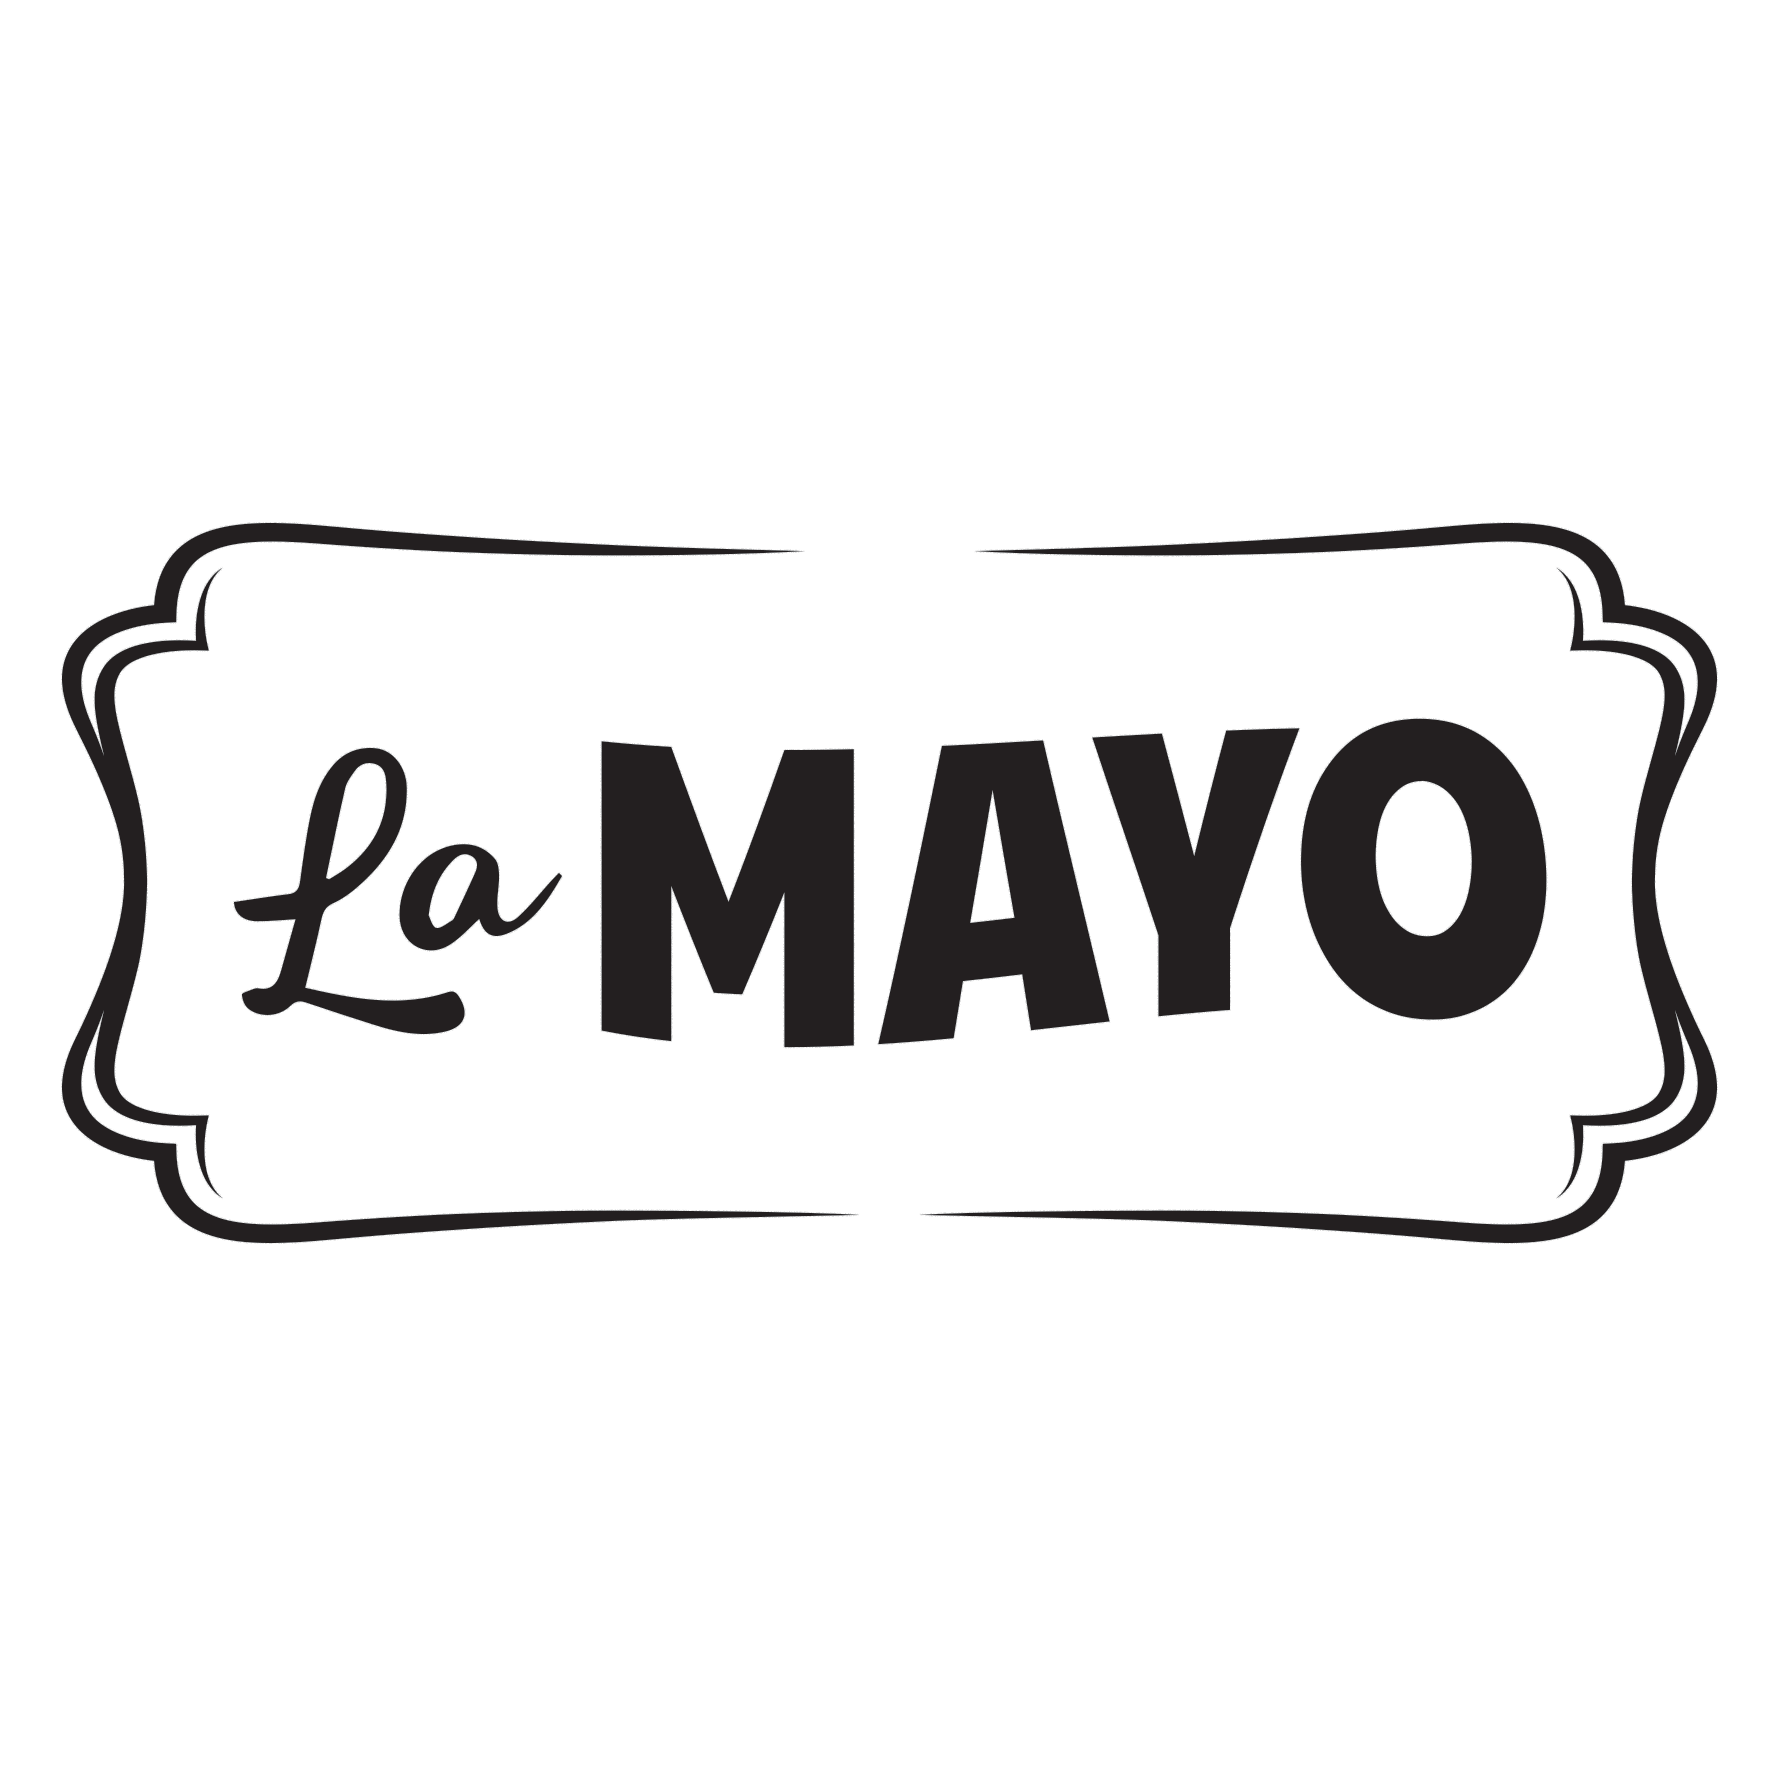 La-MAYO-Logo-Black-Square